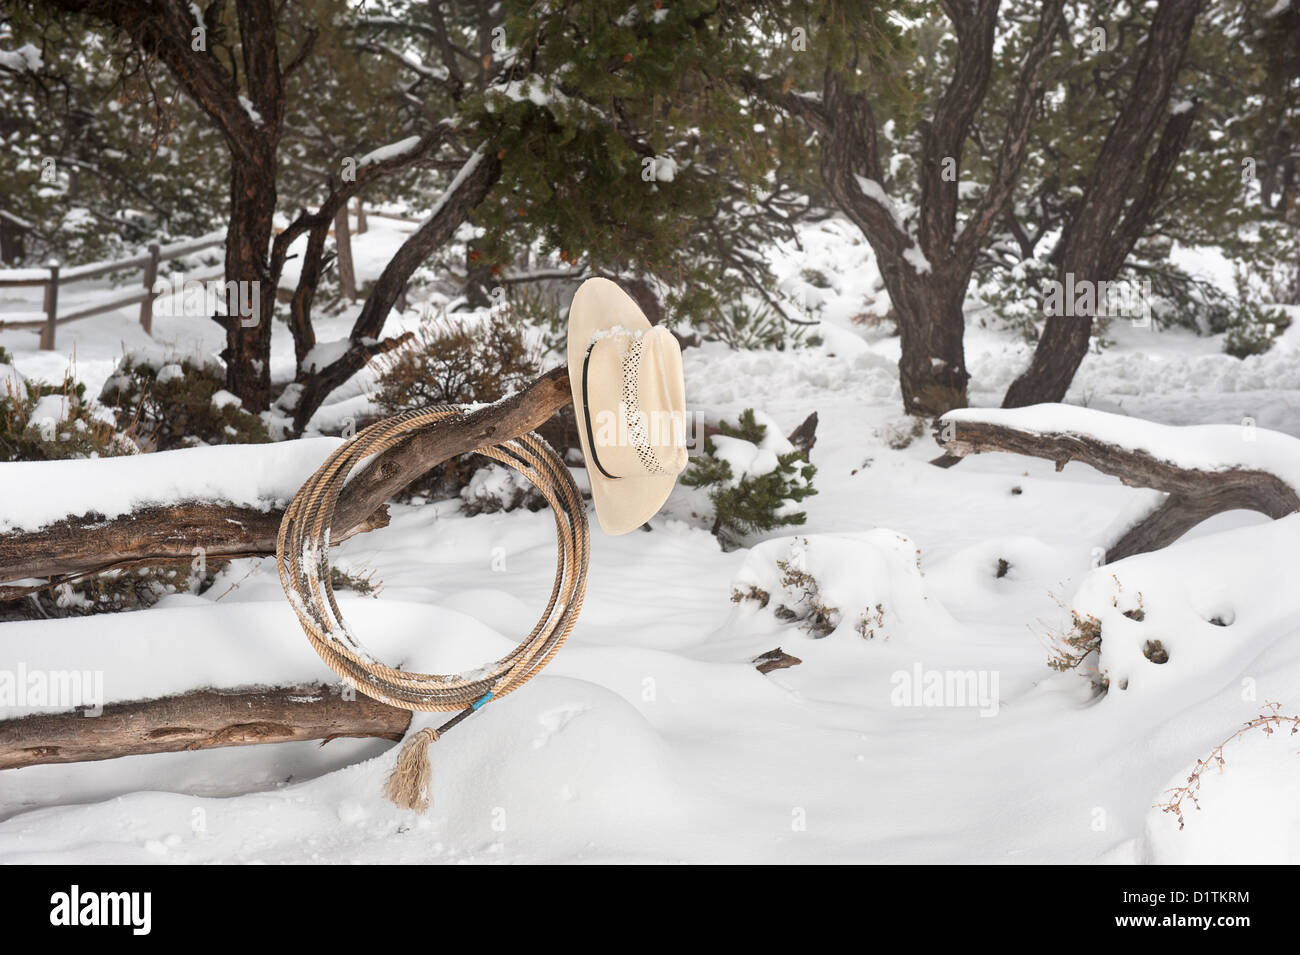 Western ranching equipment including a lasso and cowboy hat on a fence in the thick winter snow. - Stock Image